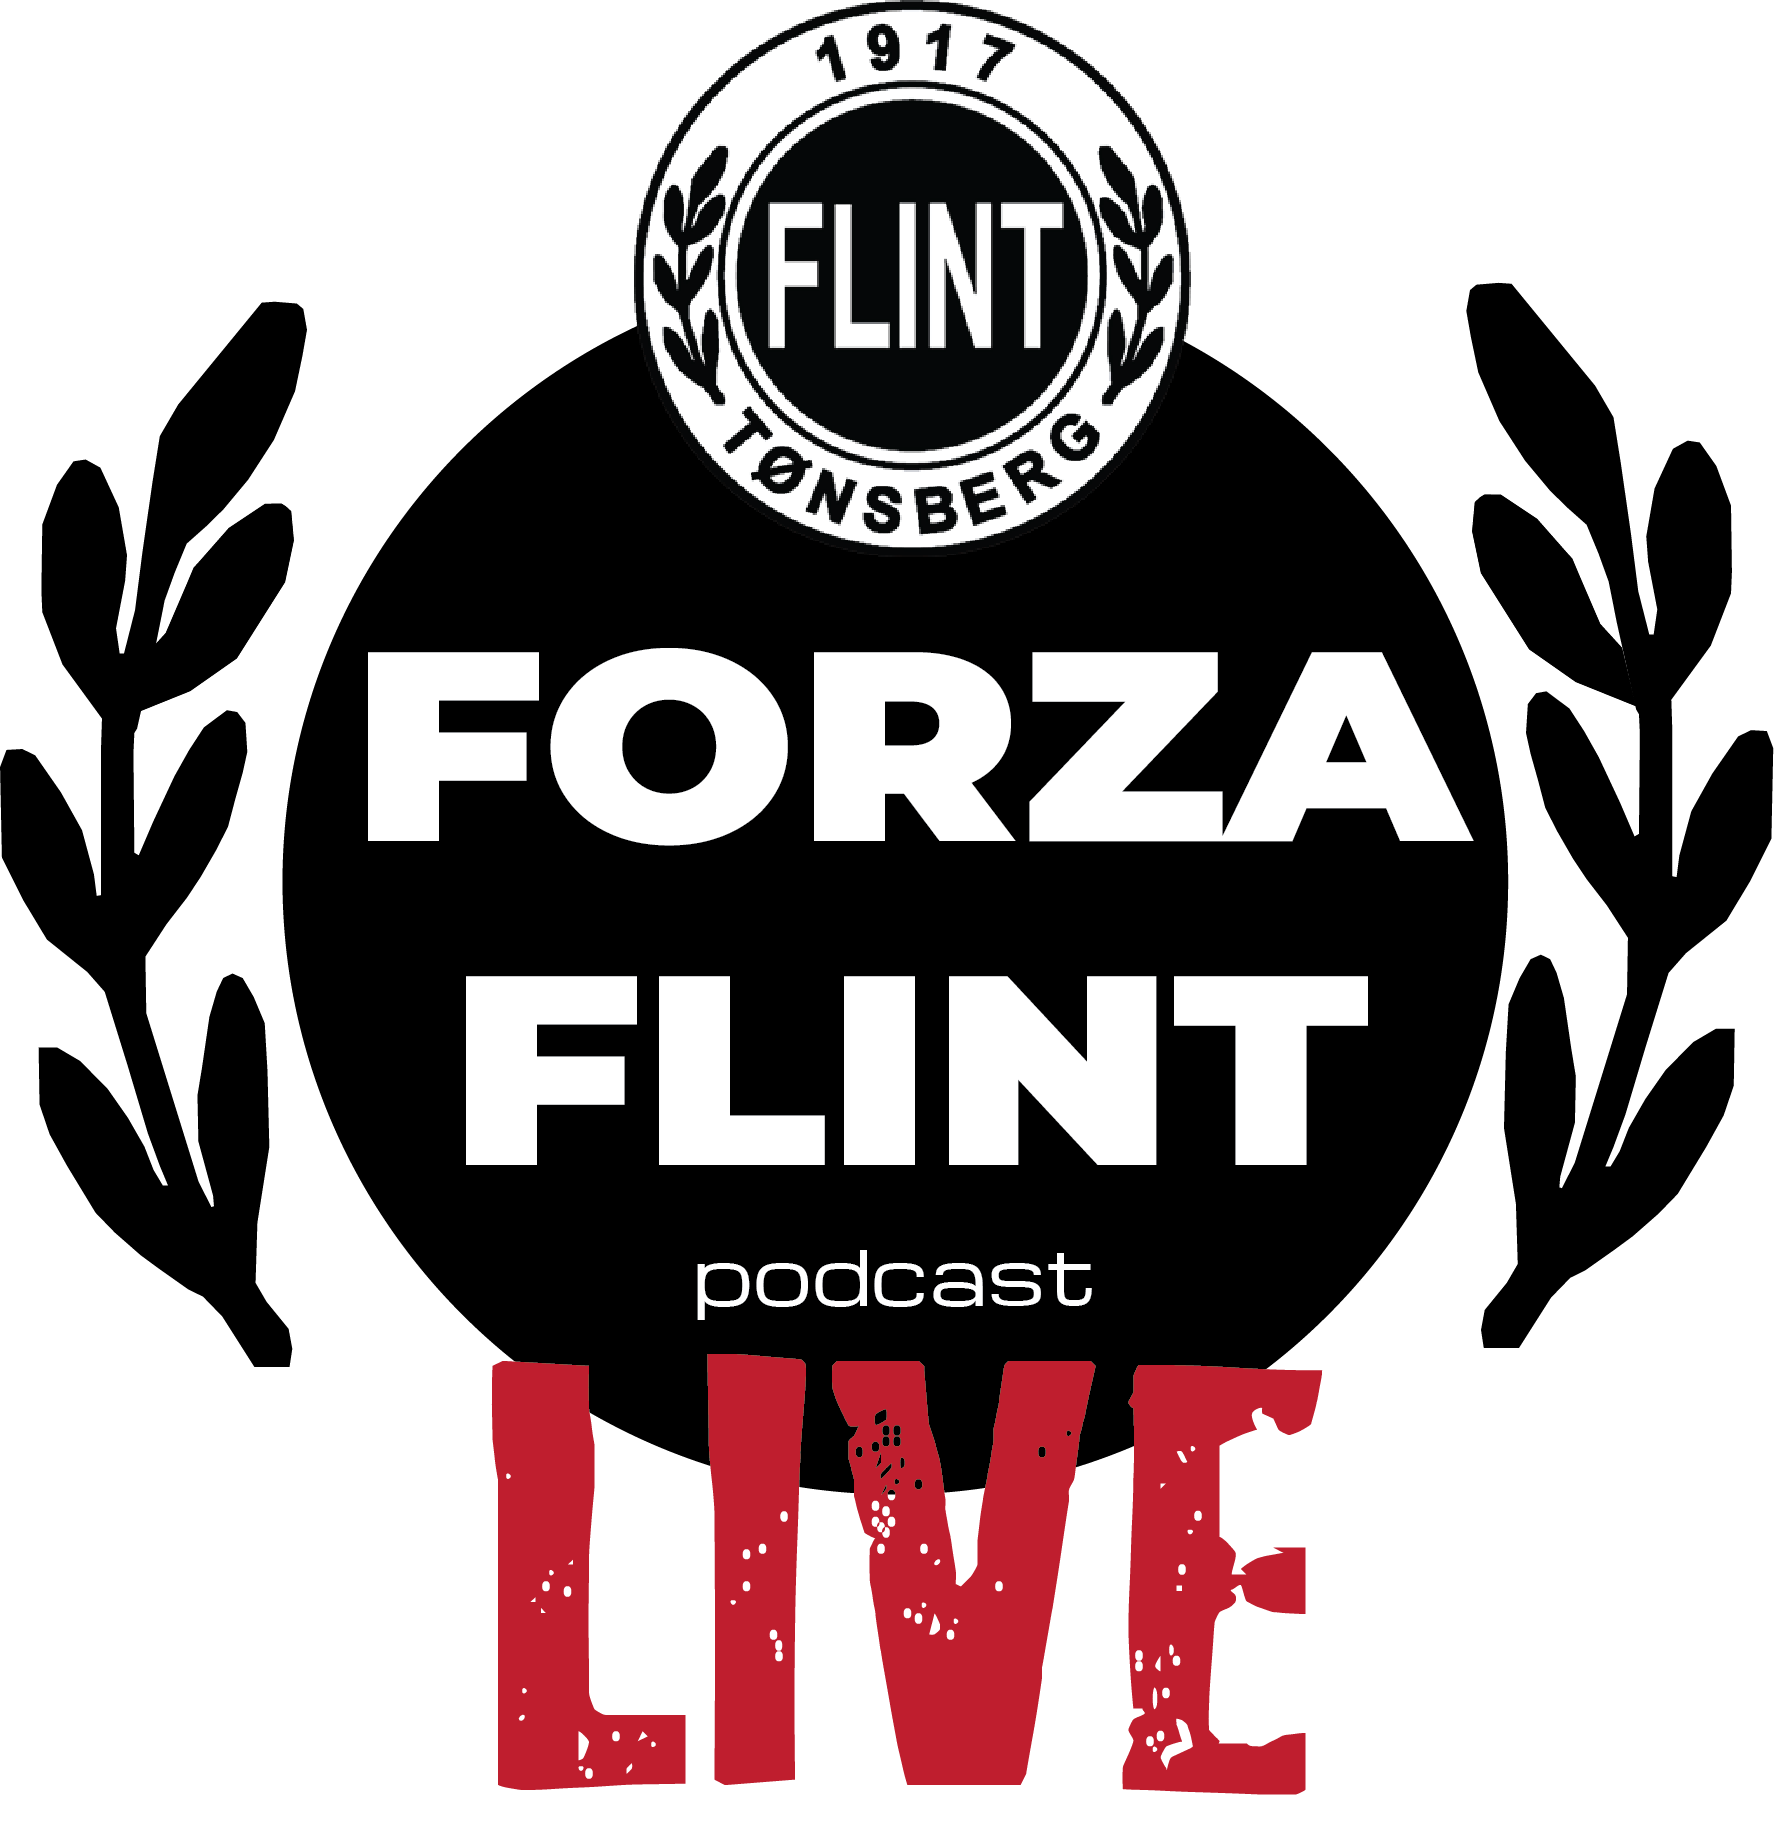 https://www.flintfotball.no/wp-content/uploads/2020/05/Forza-Flint-podcast-LIVE-logo.png